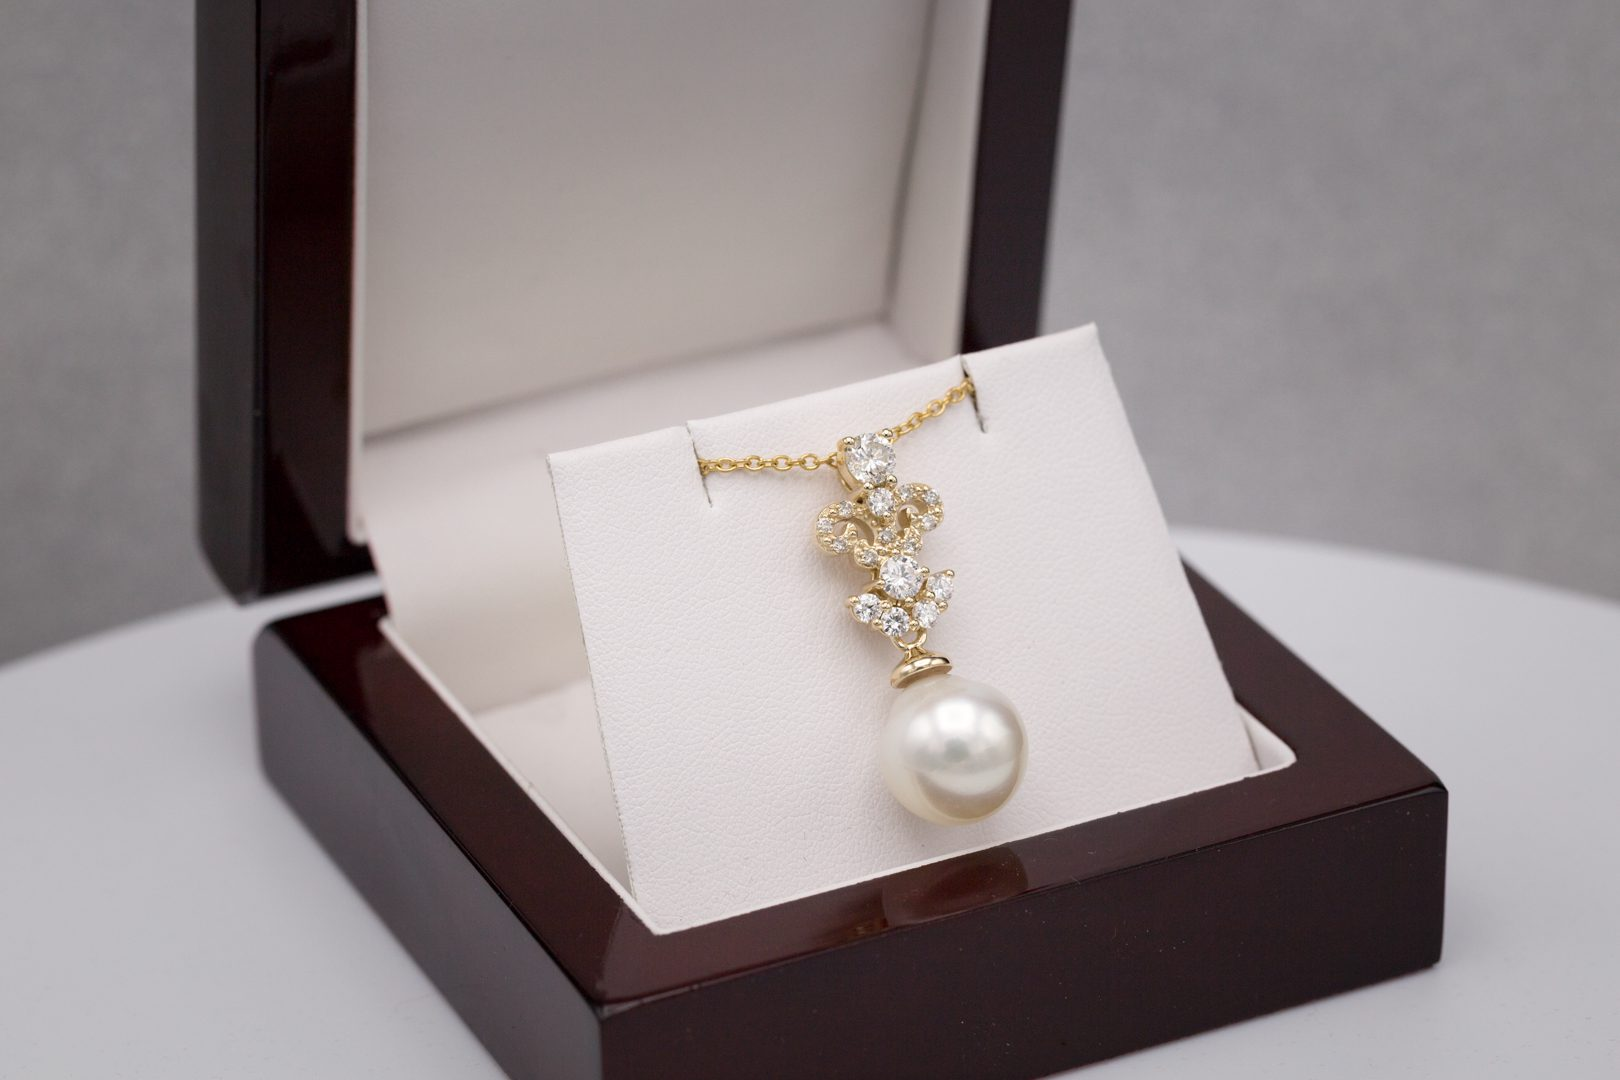 pearl pendant in jewelry box